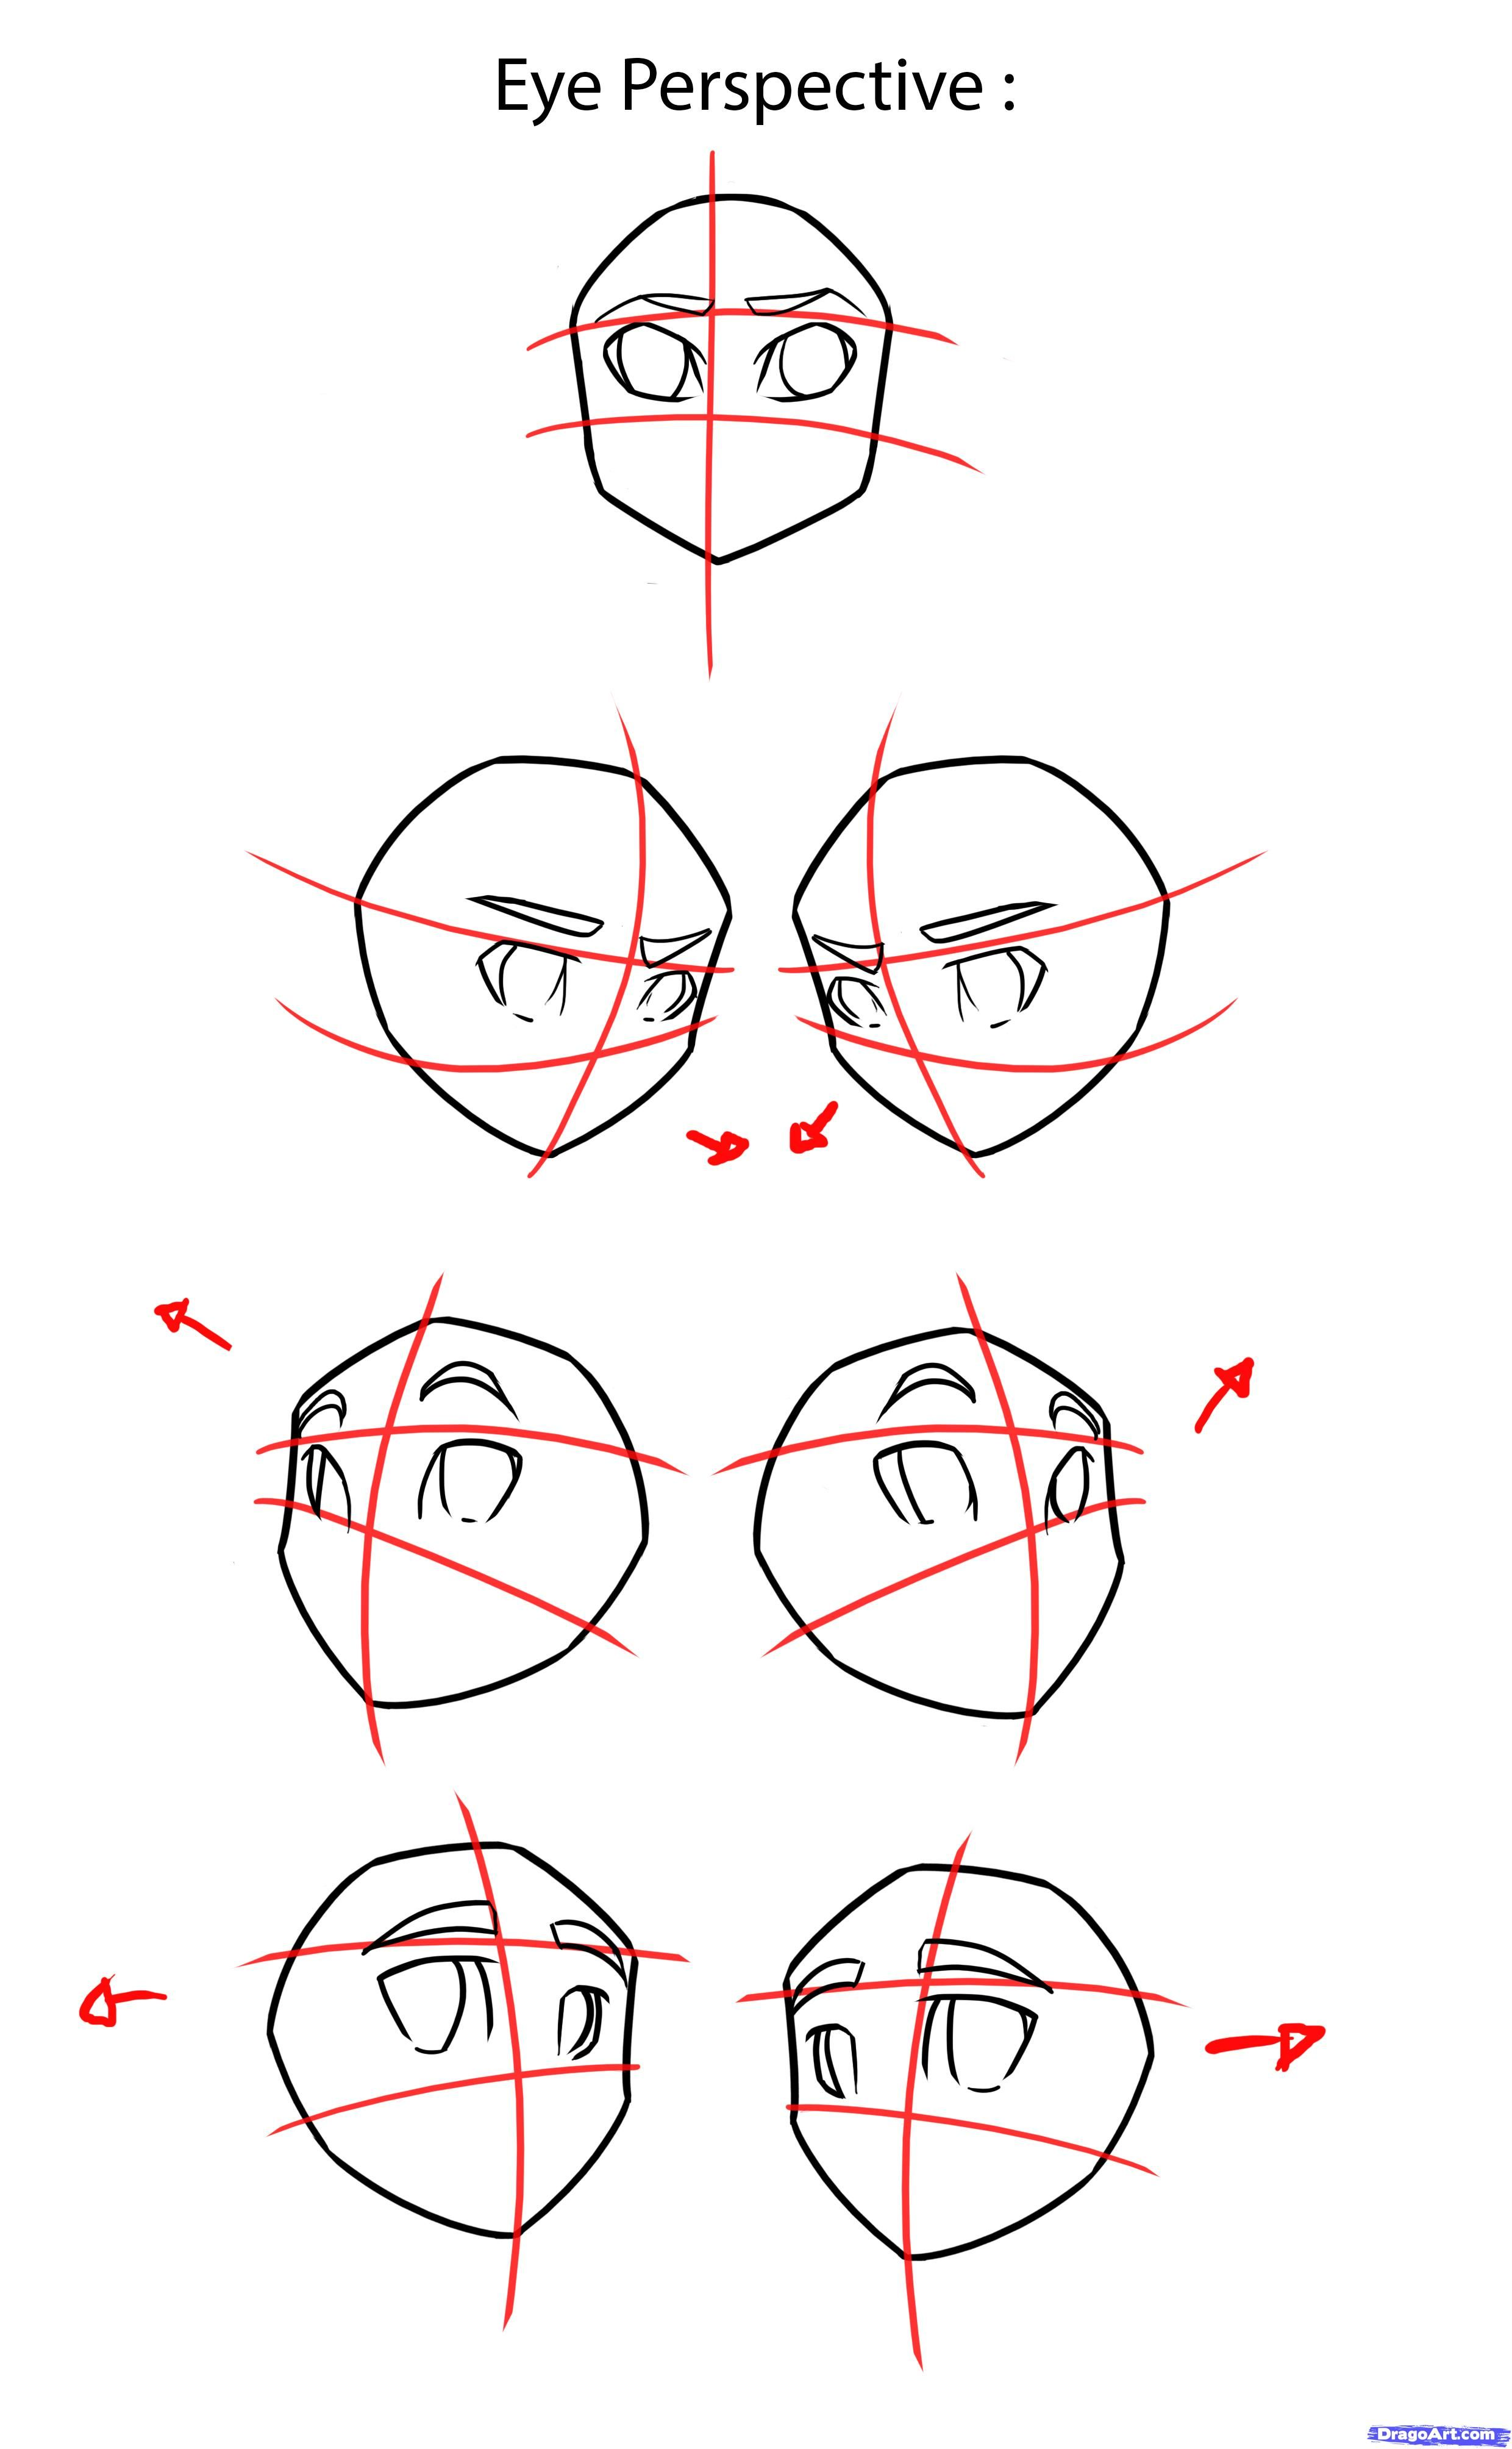 How To Draw Anime Eyes, Step By Step, Anime Eyes, Anime, Draw